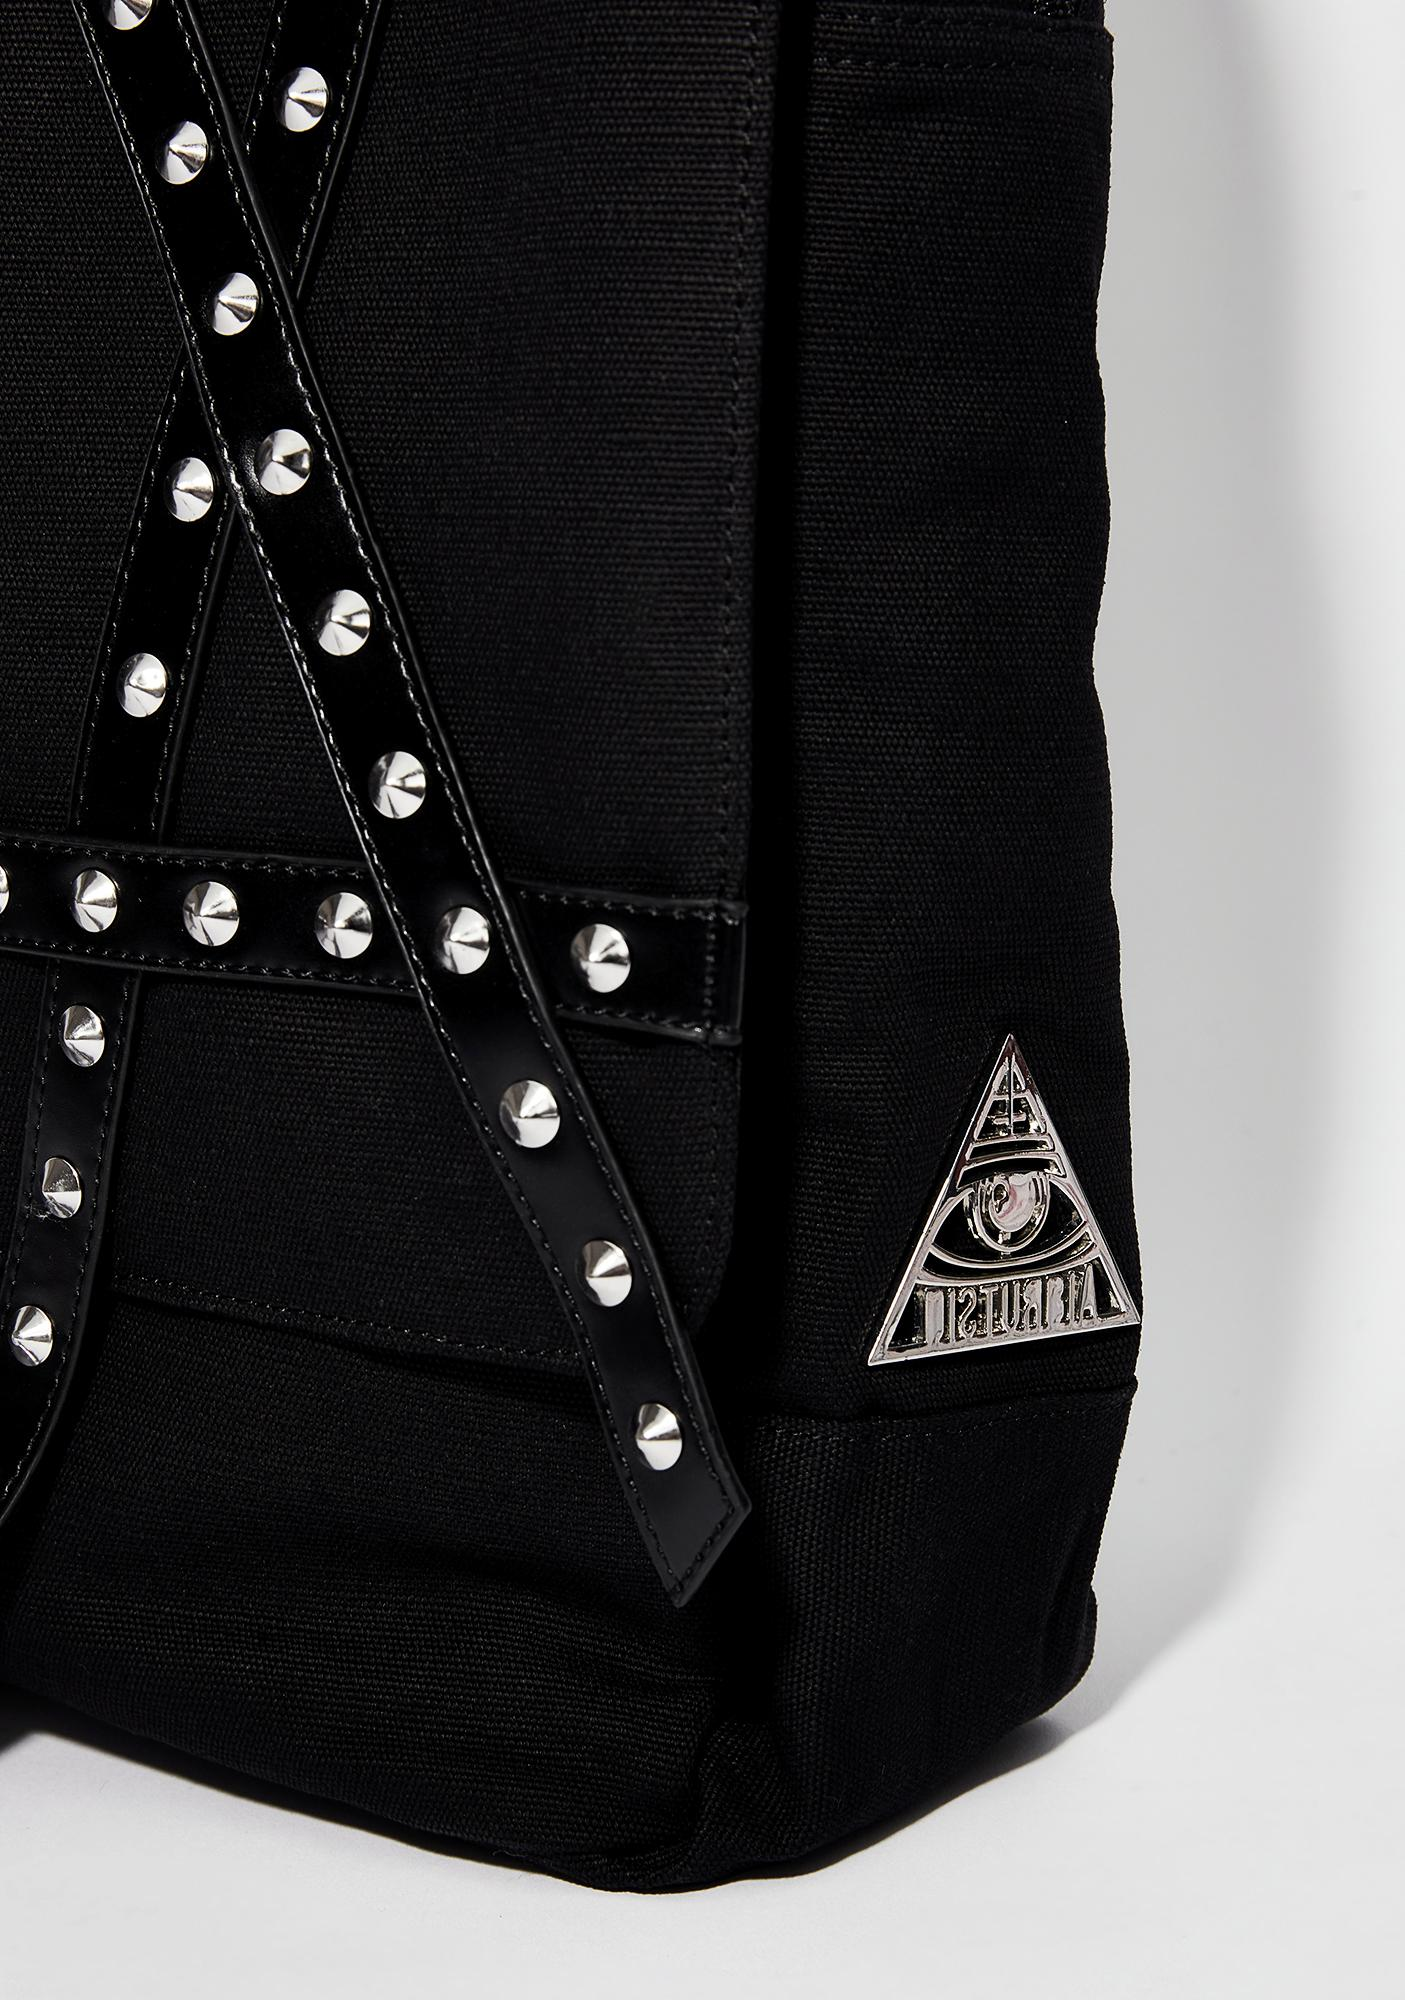 Disturbia Pentagram Backpack